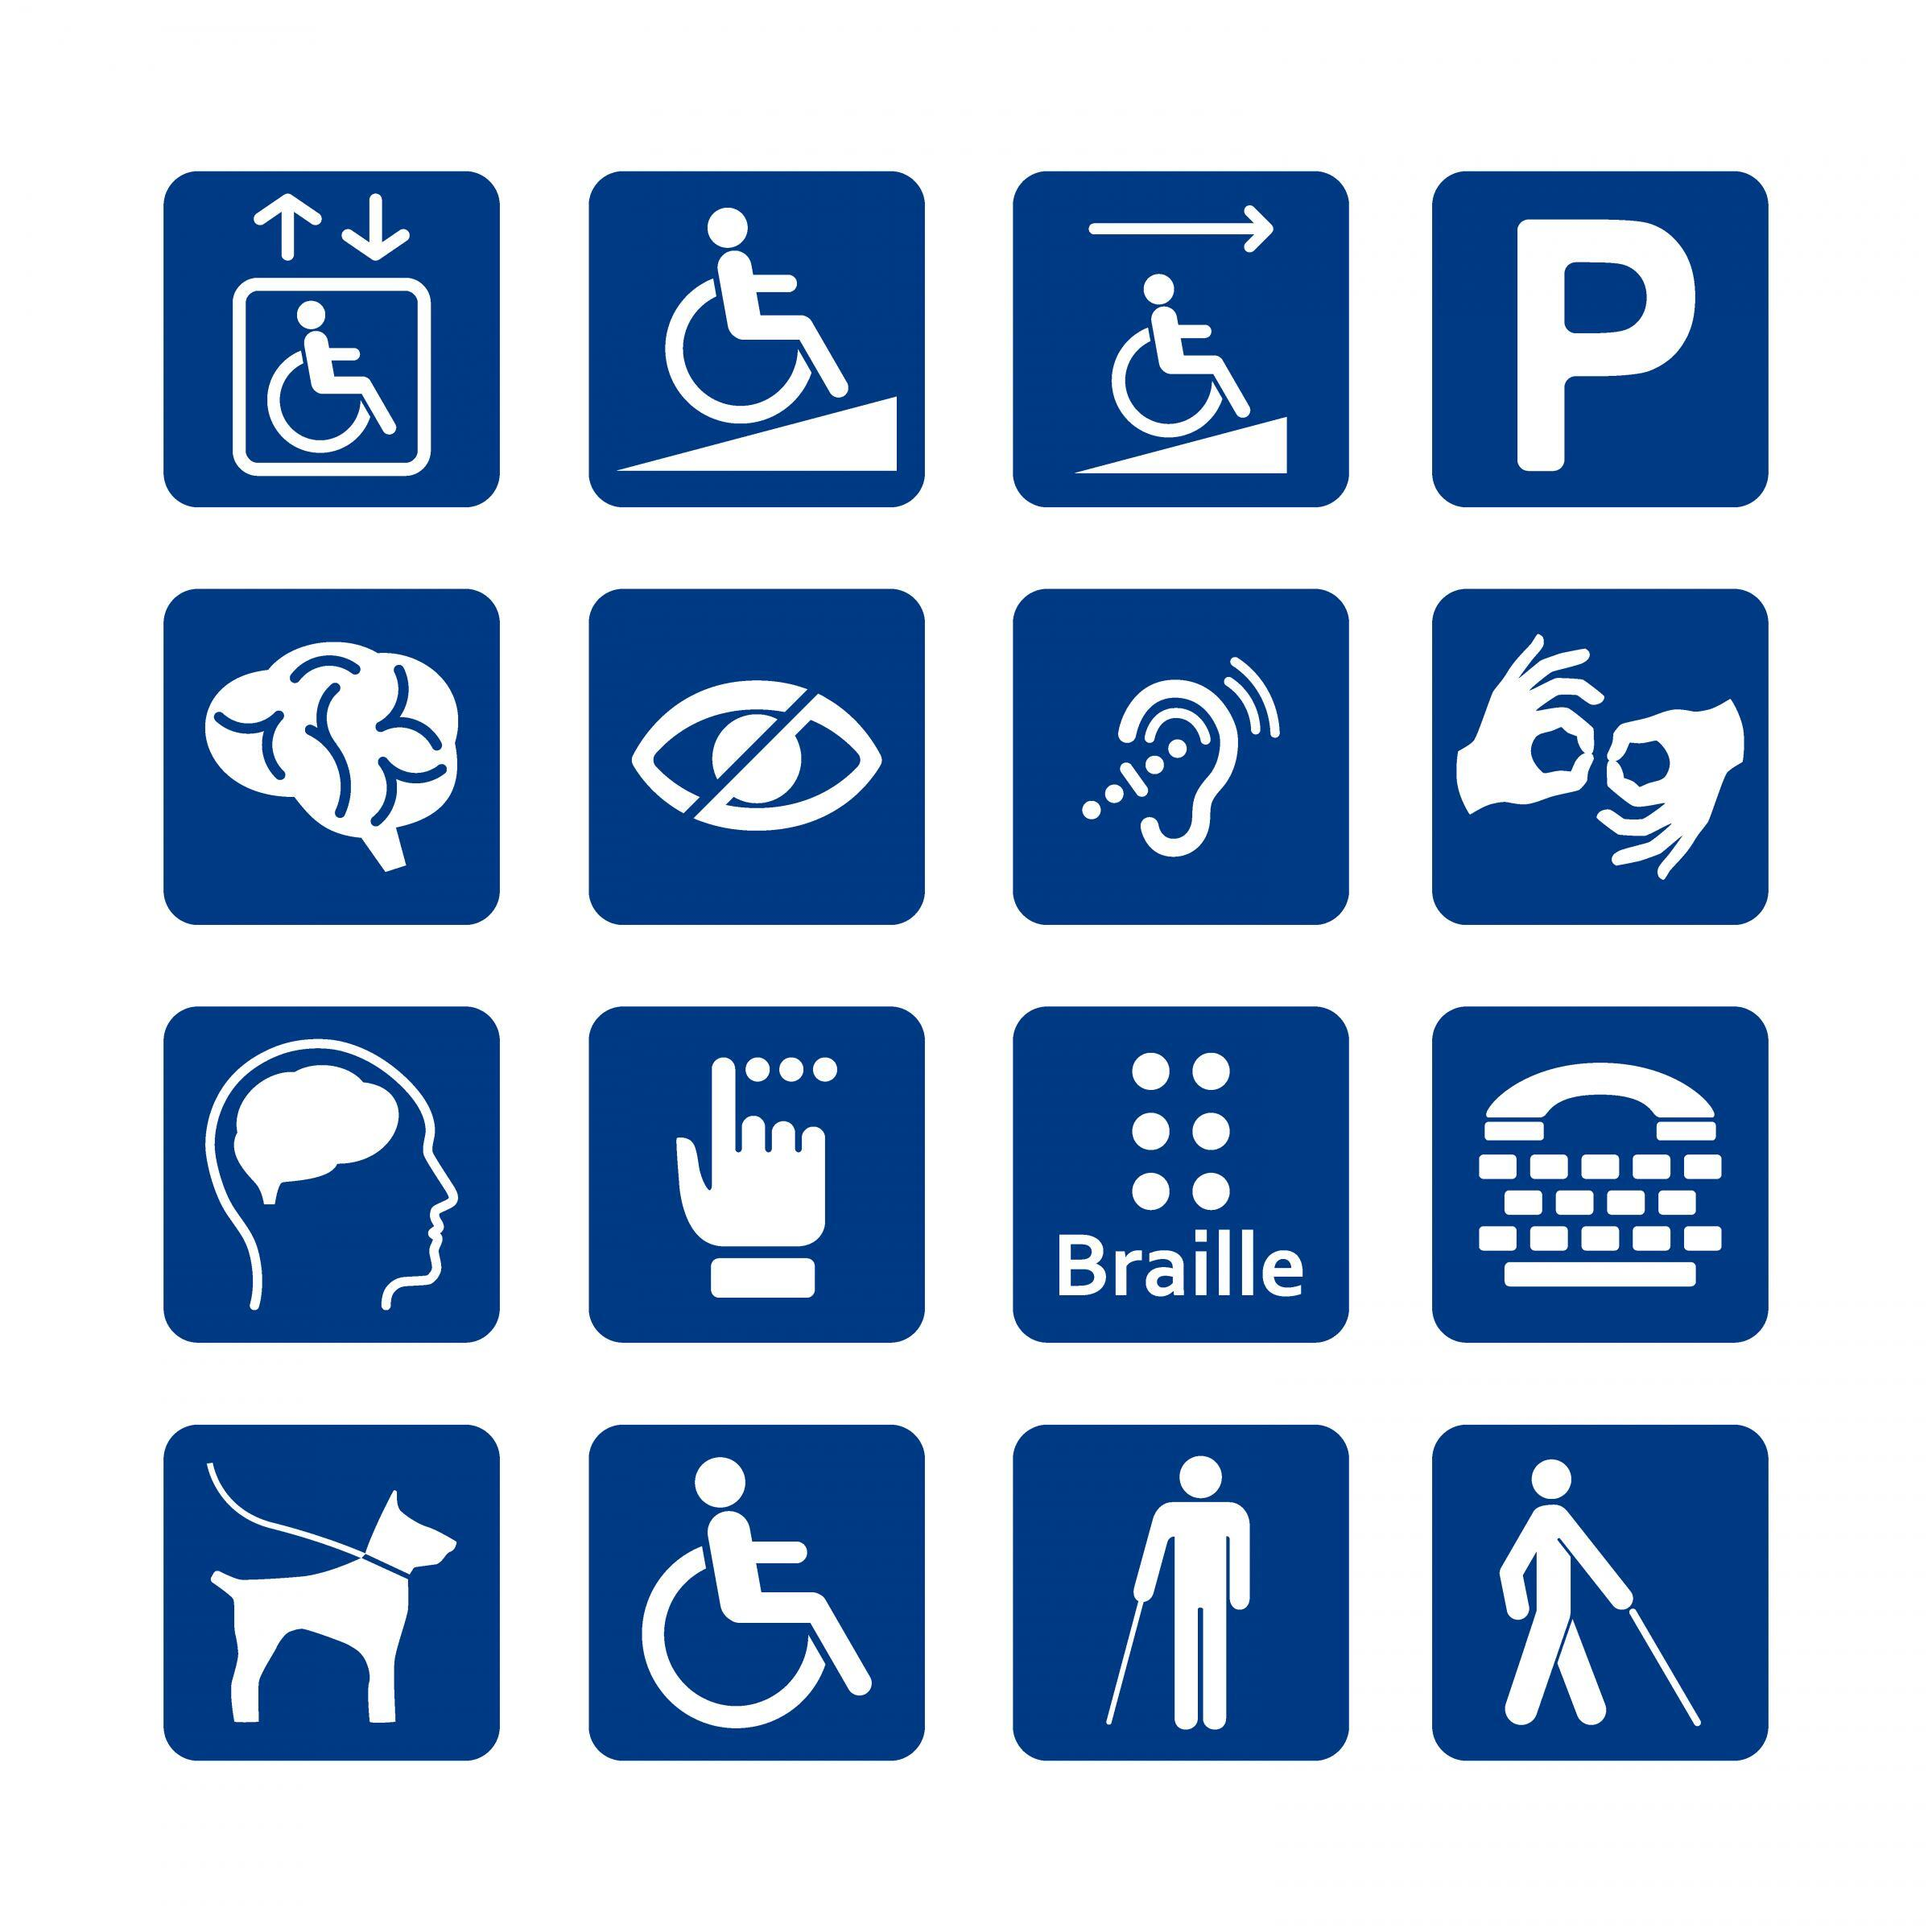 Blue square set of disability icons